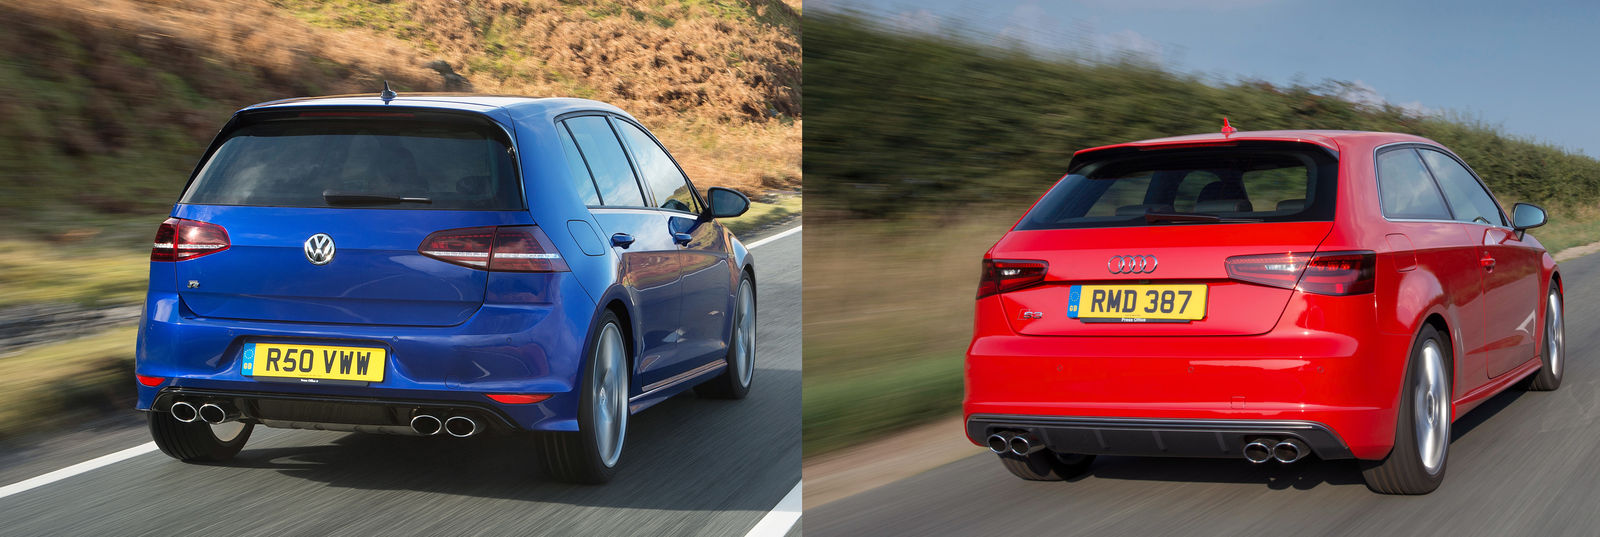 volkswagen golf r vs audi s3 which is the best super hatch on sale in the uk carwow. Black Bedroom Furniture Sets. Home Design Ideas